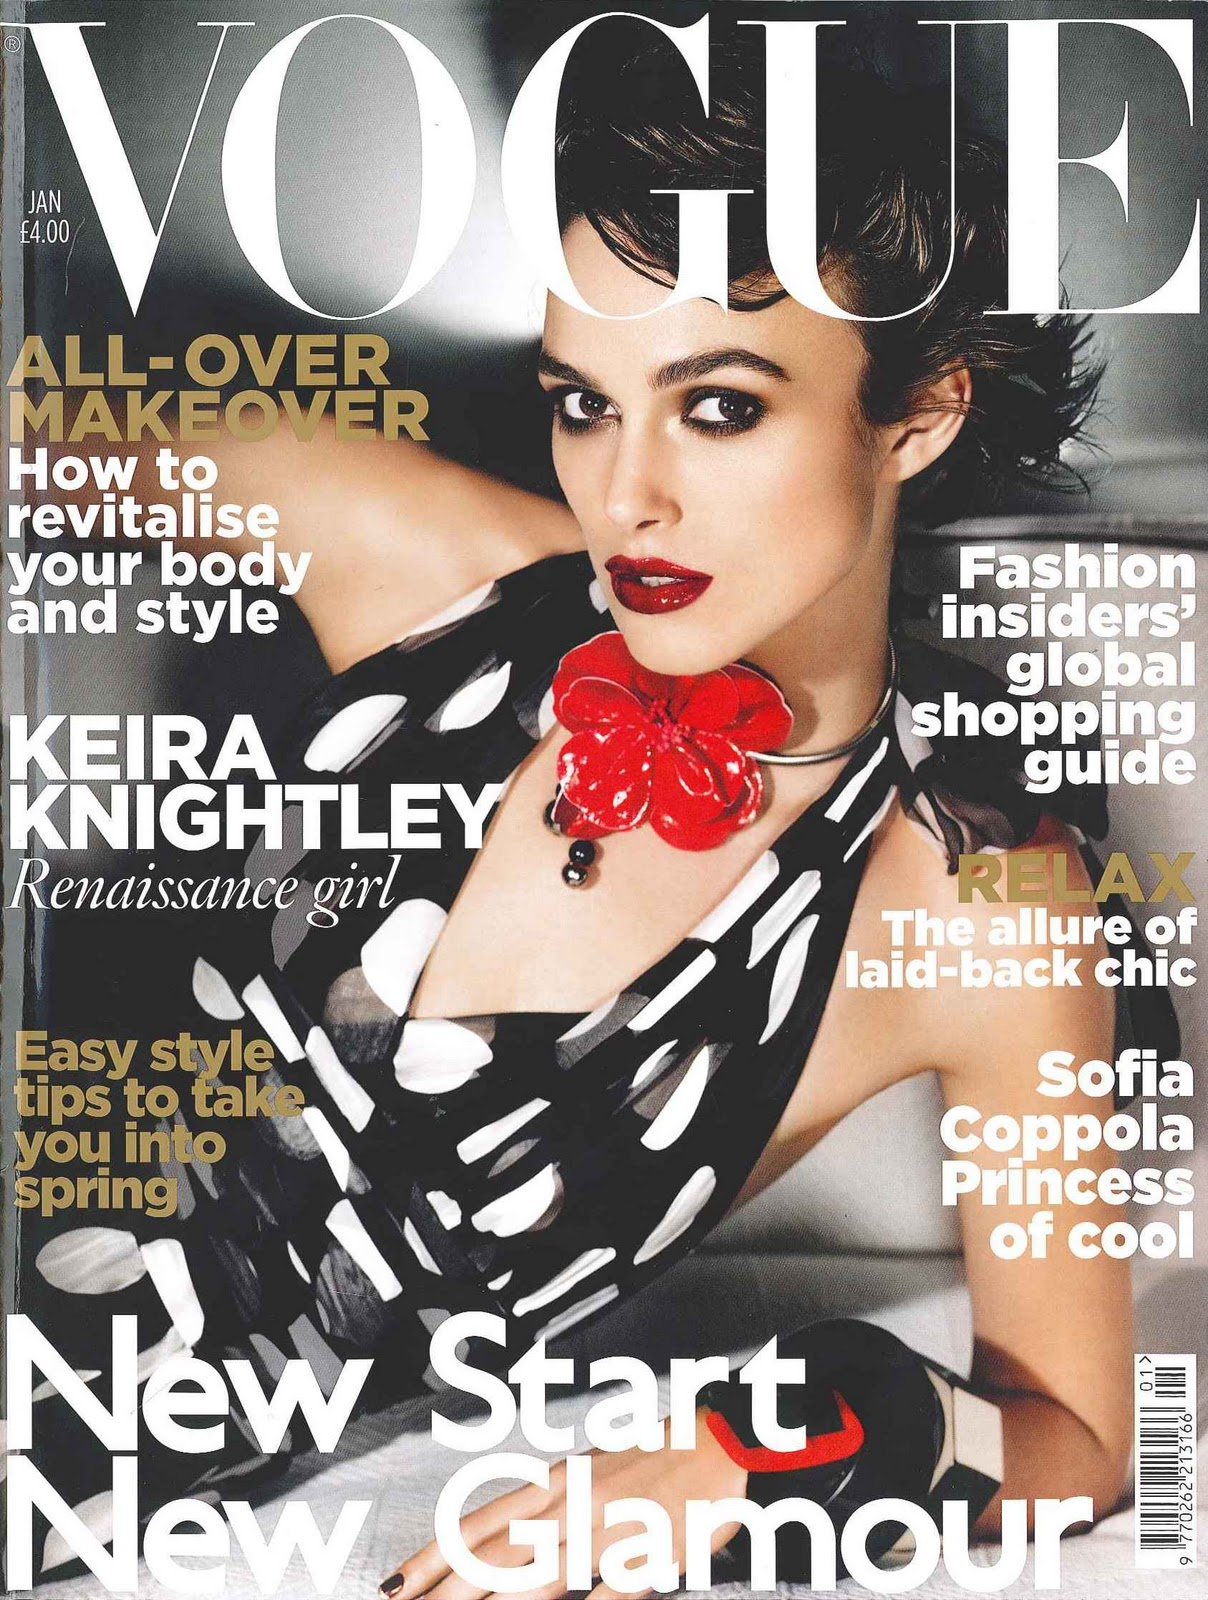 vogue magazine keira knightley testino mario accessories covers british kiera knightly chunky mode